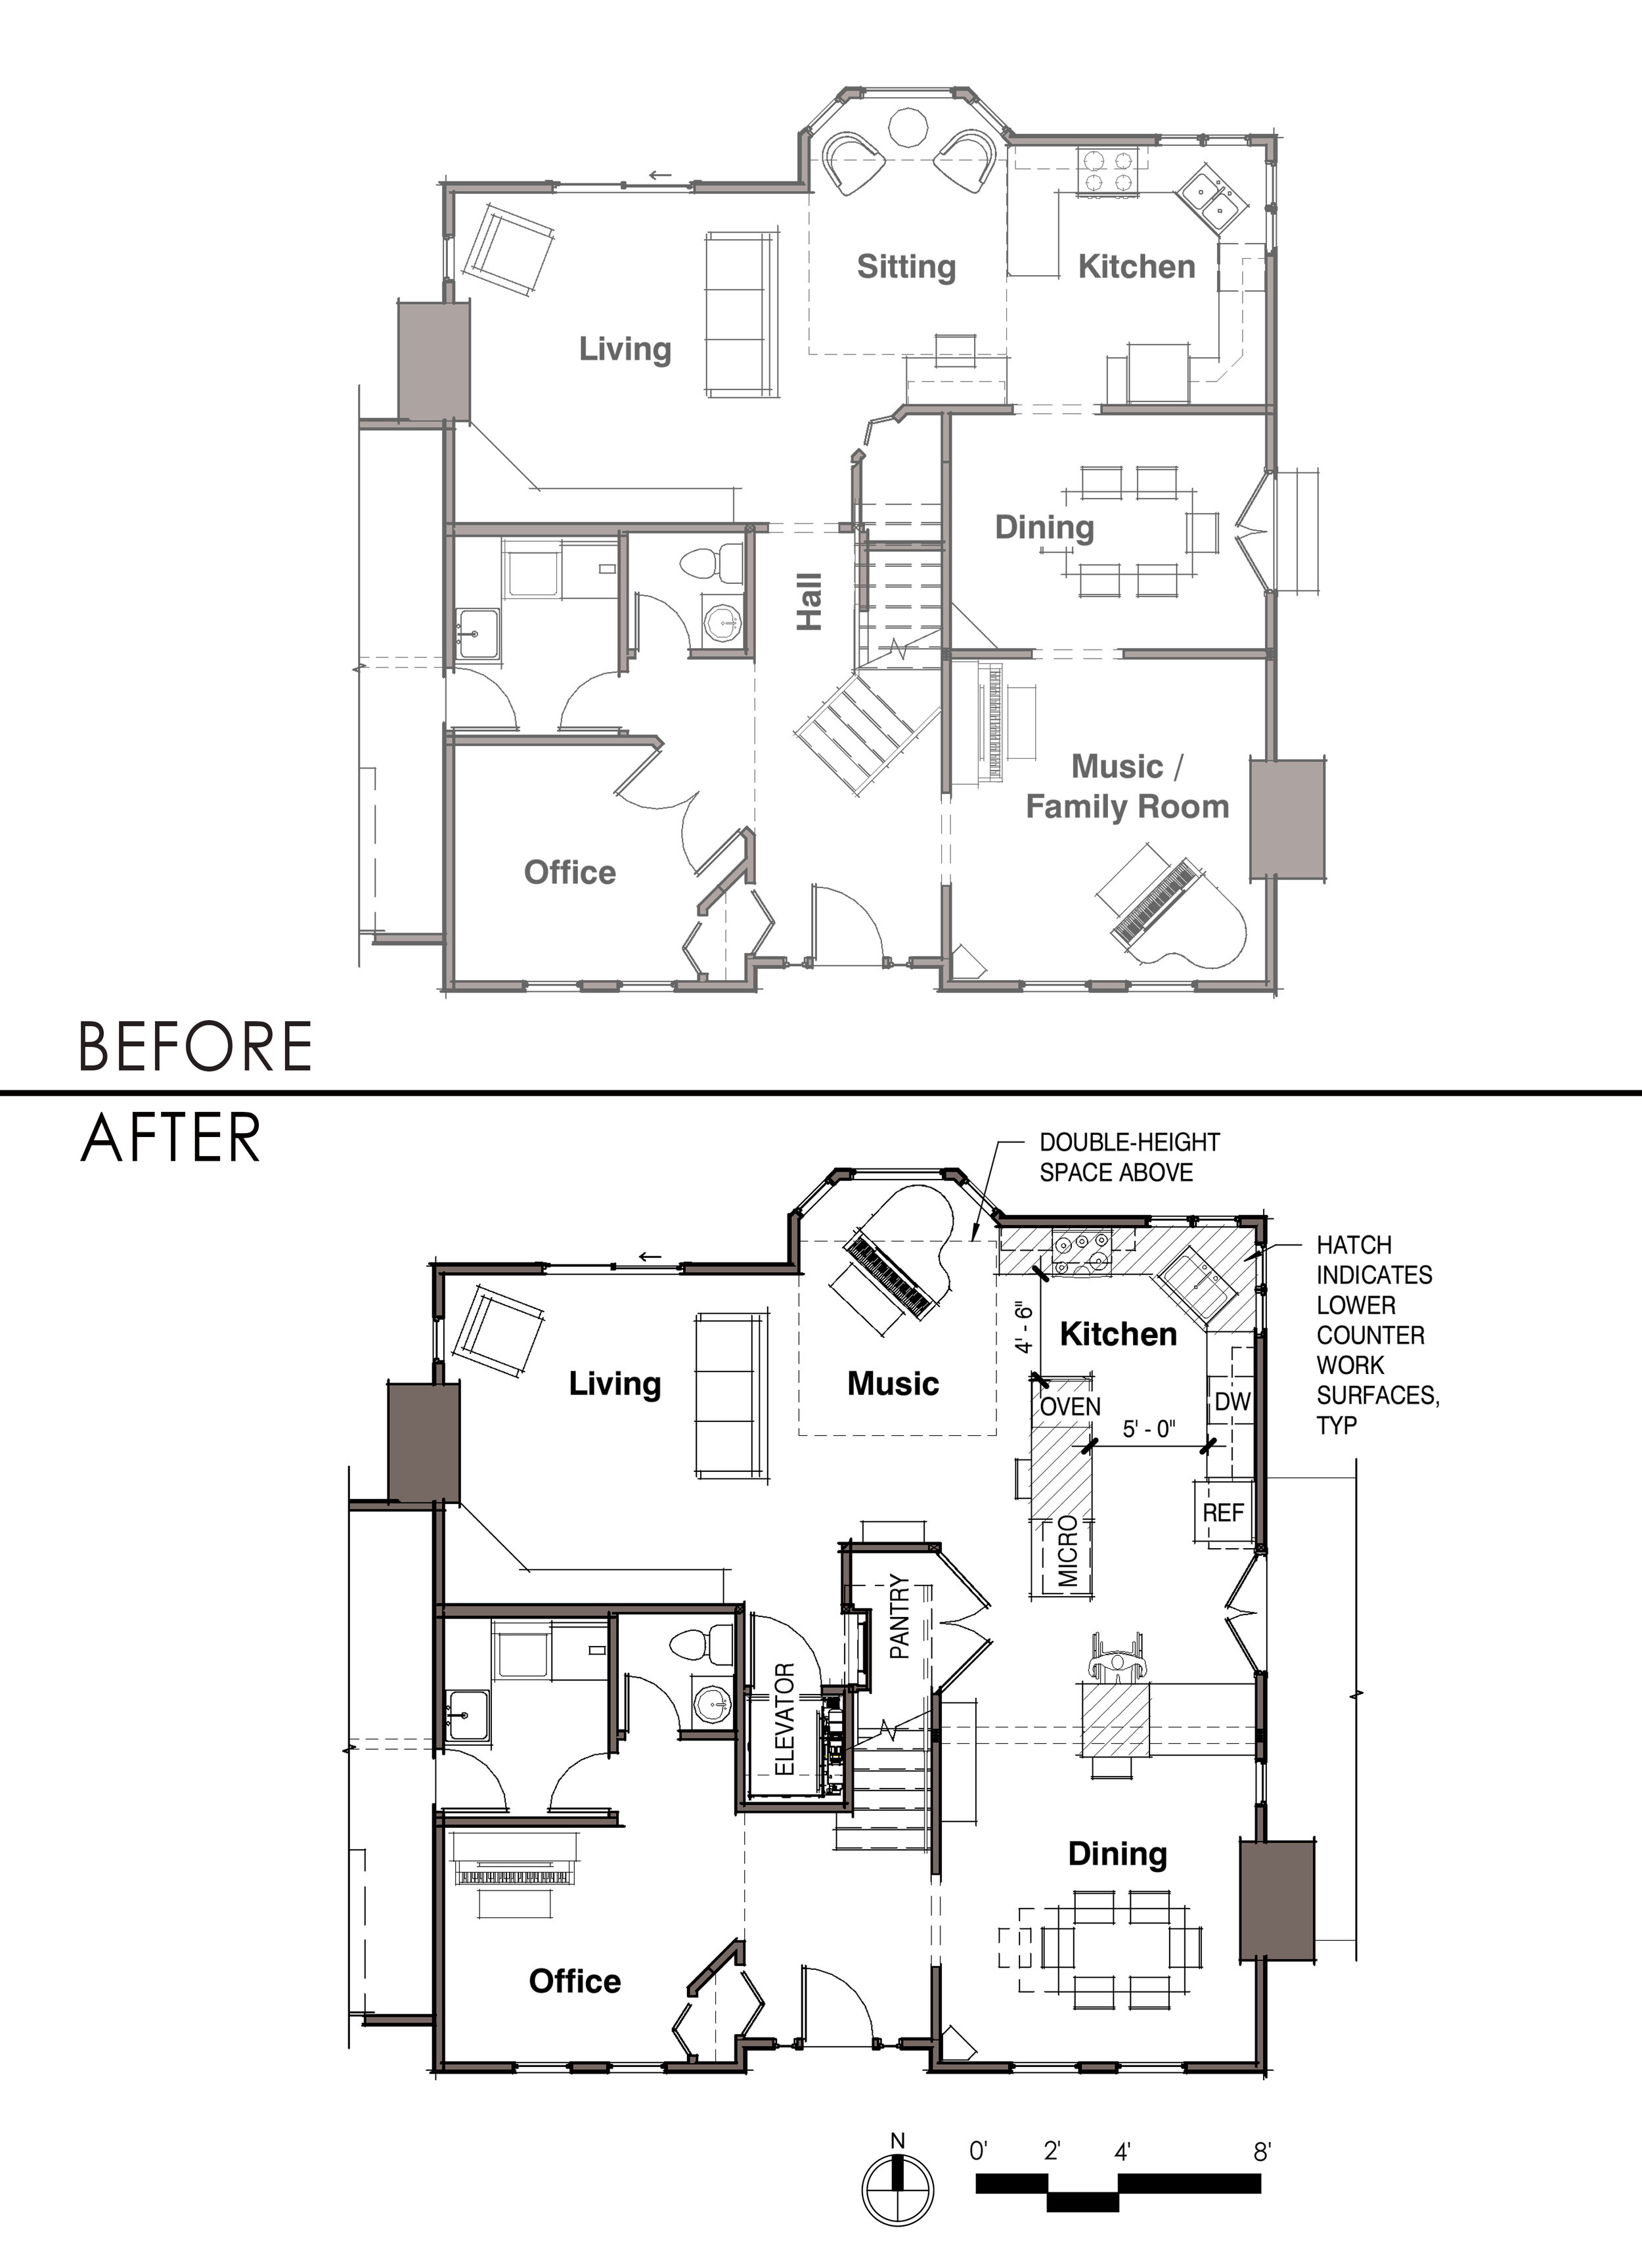 Harka Architecture_ADA Remodel_Residential_Wheelchair - Before After Floor Plan.jpg